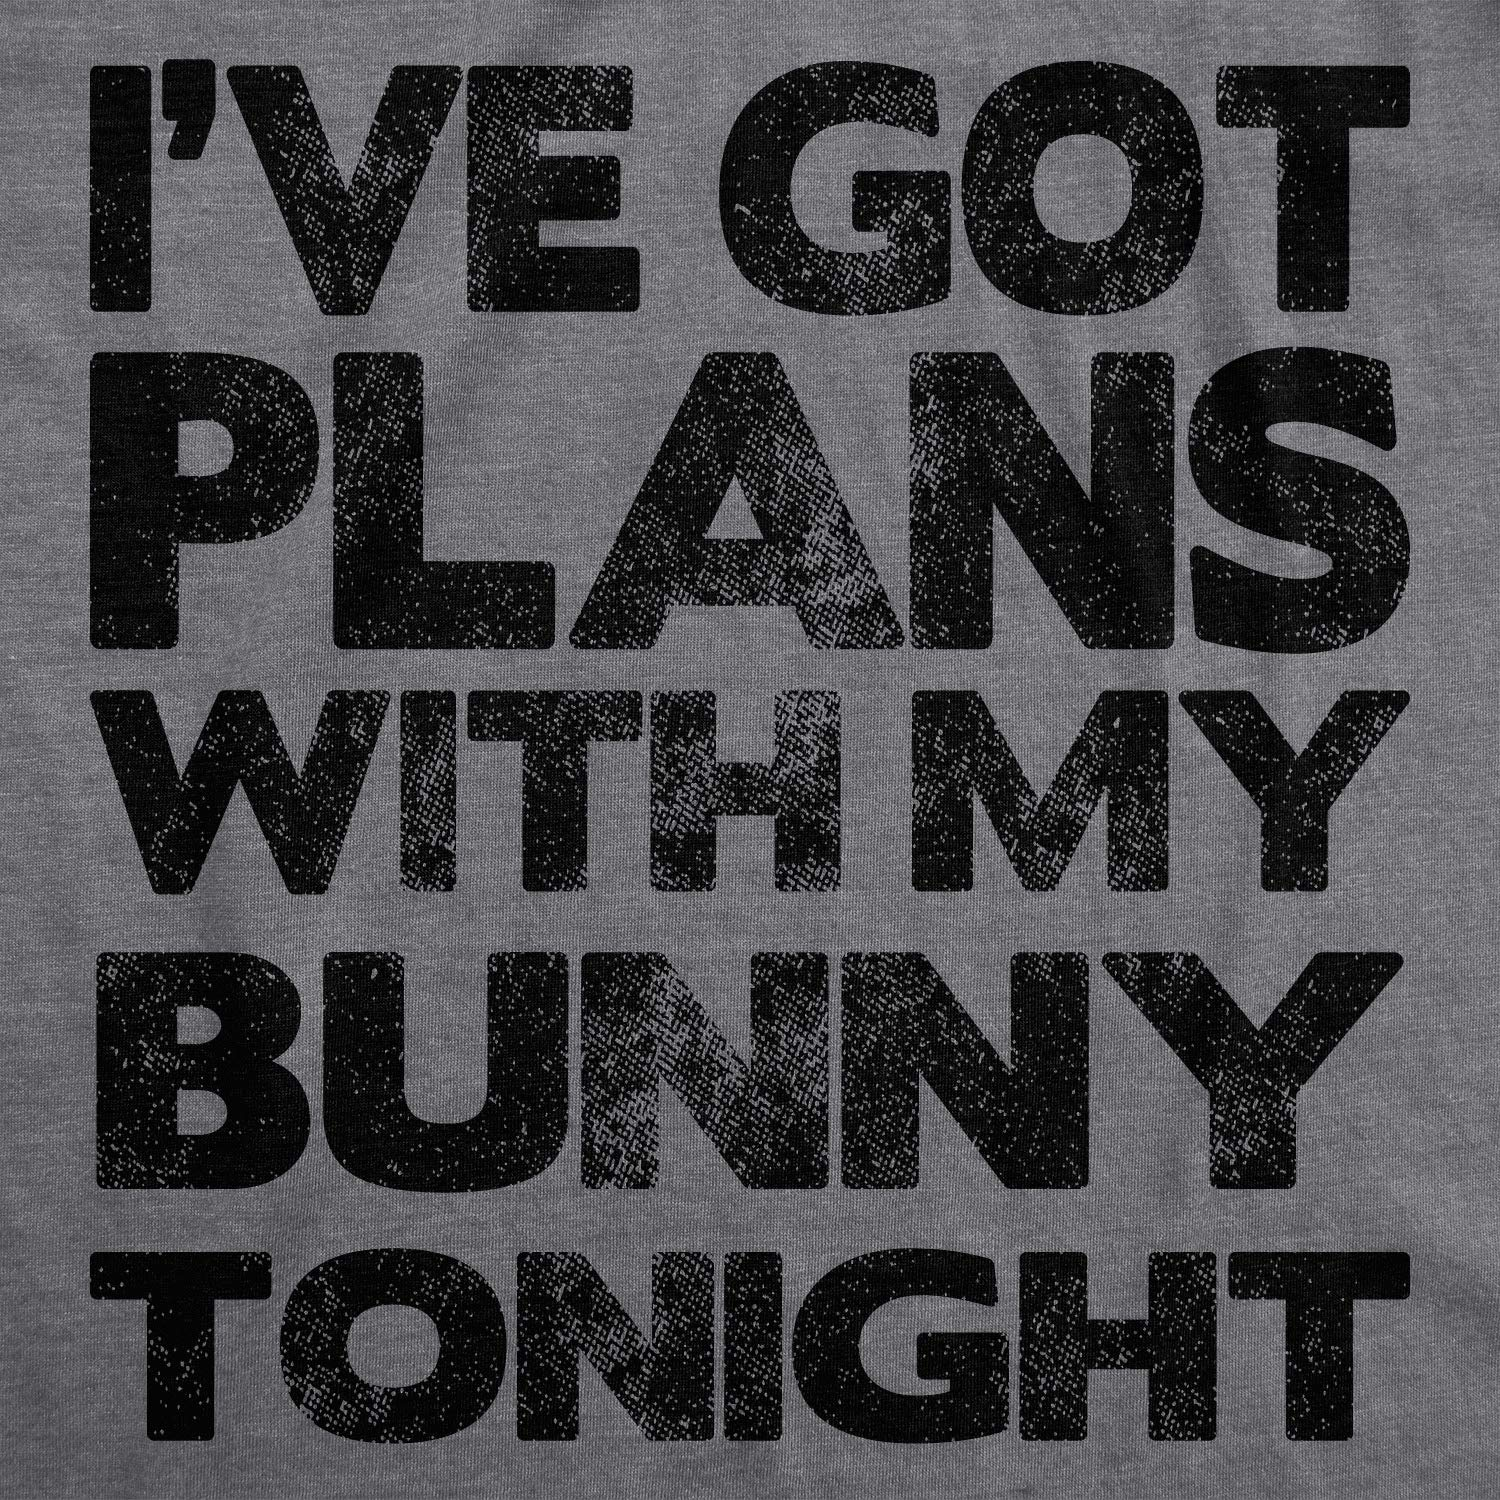 Crazy Dog T-Shirts Mens Ive Got Plans with My Bunny Tonight Tshirt Funny Easter Tee